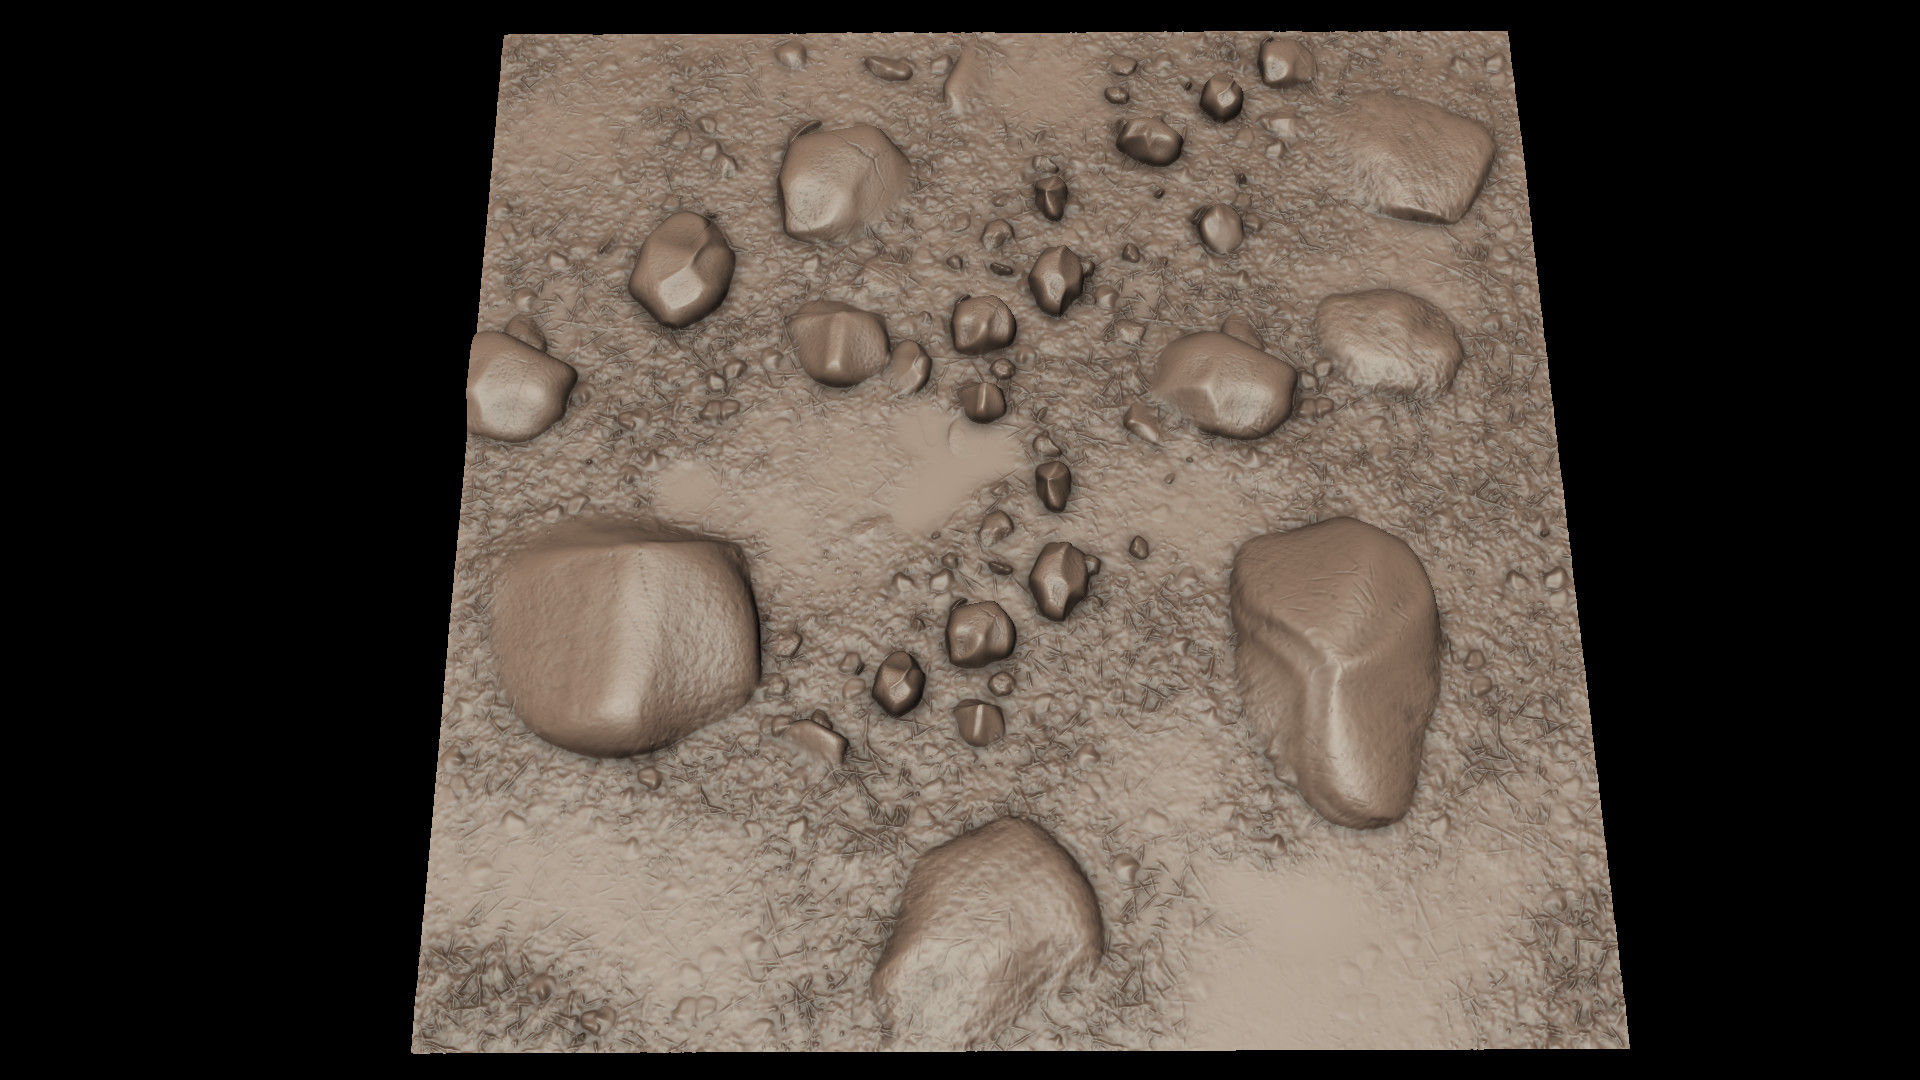 David baldwin mudbox ground